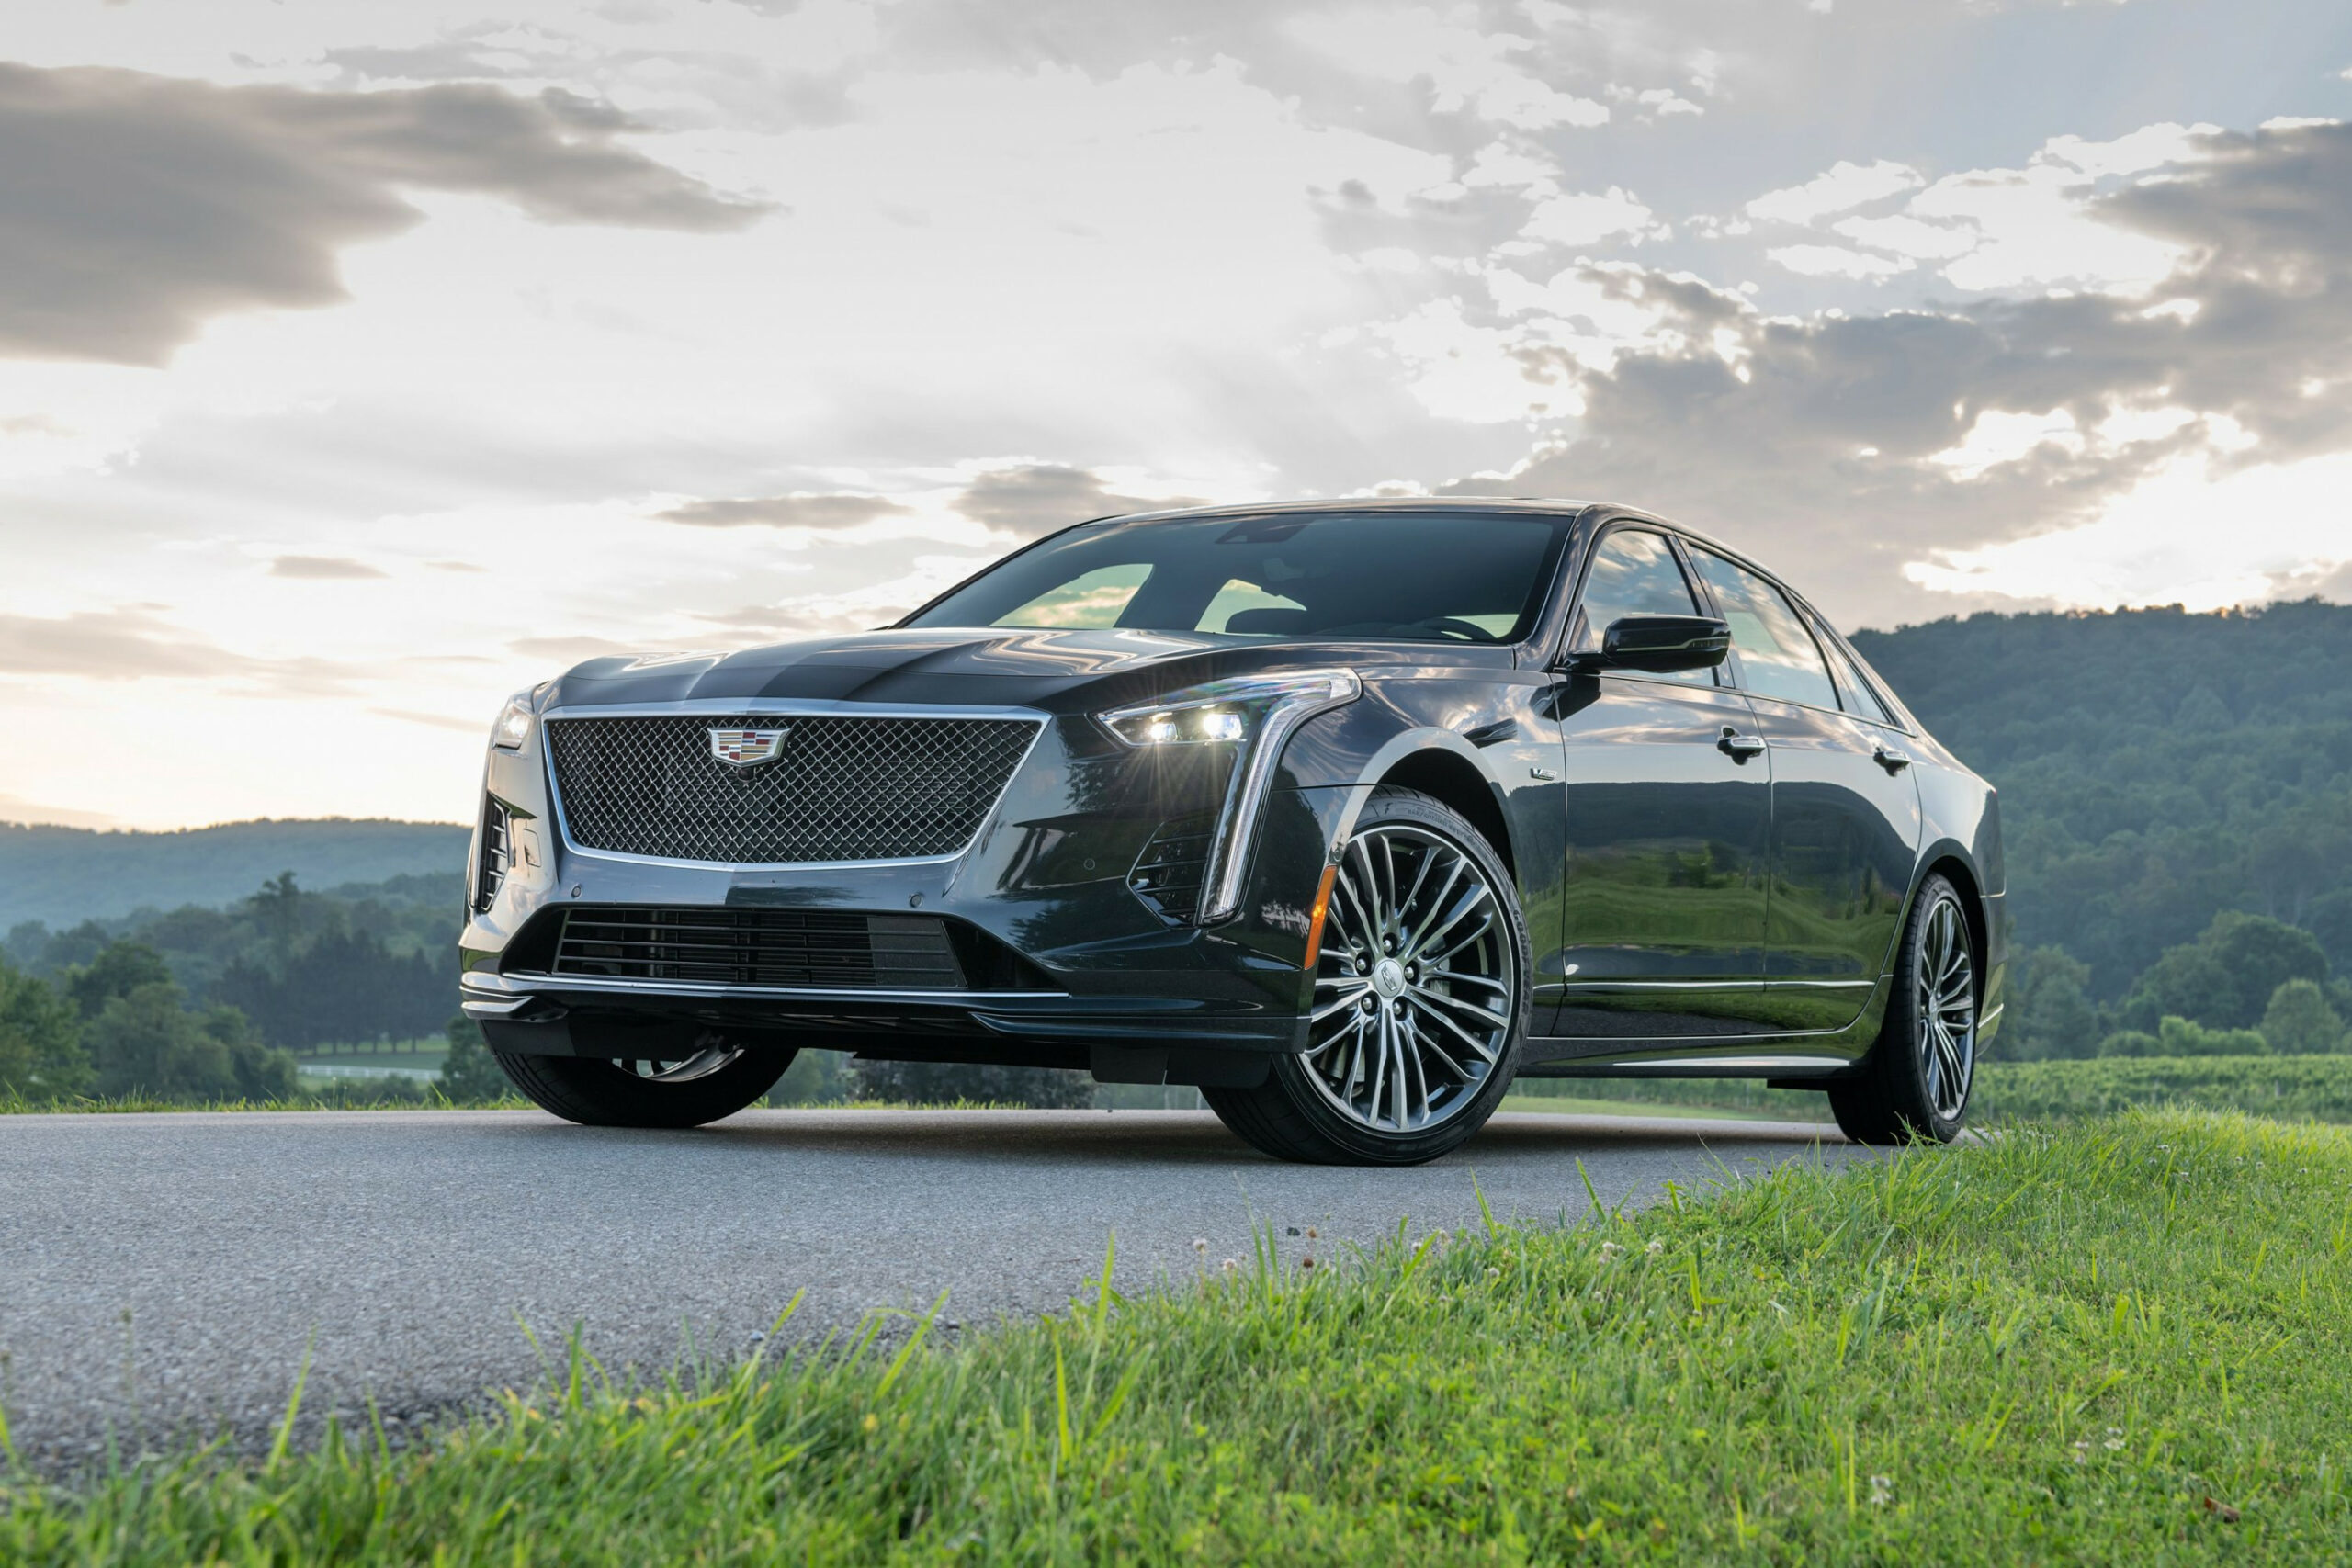 7 Cadillac CT7-V First Drive Review - cadillac v series 2020